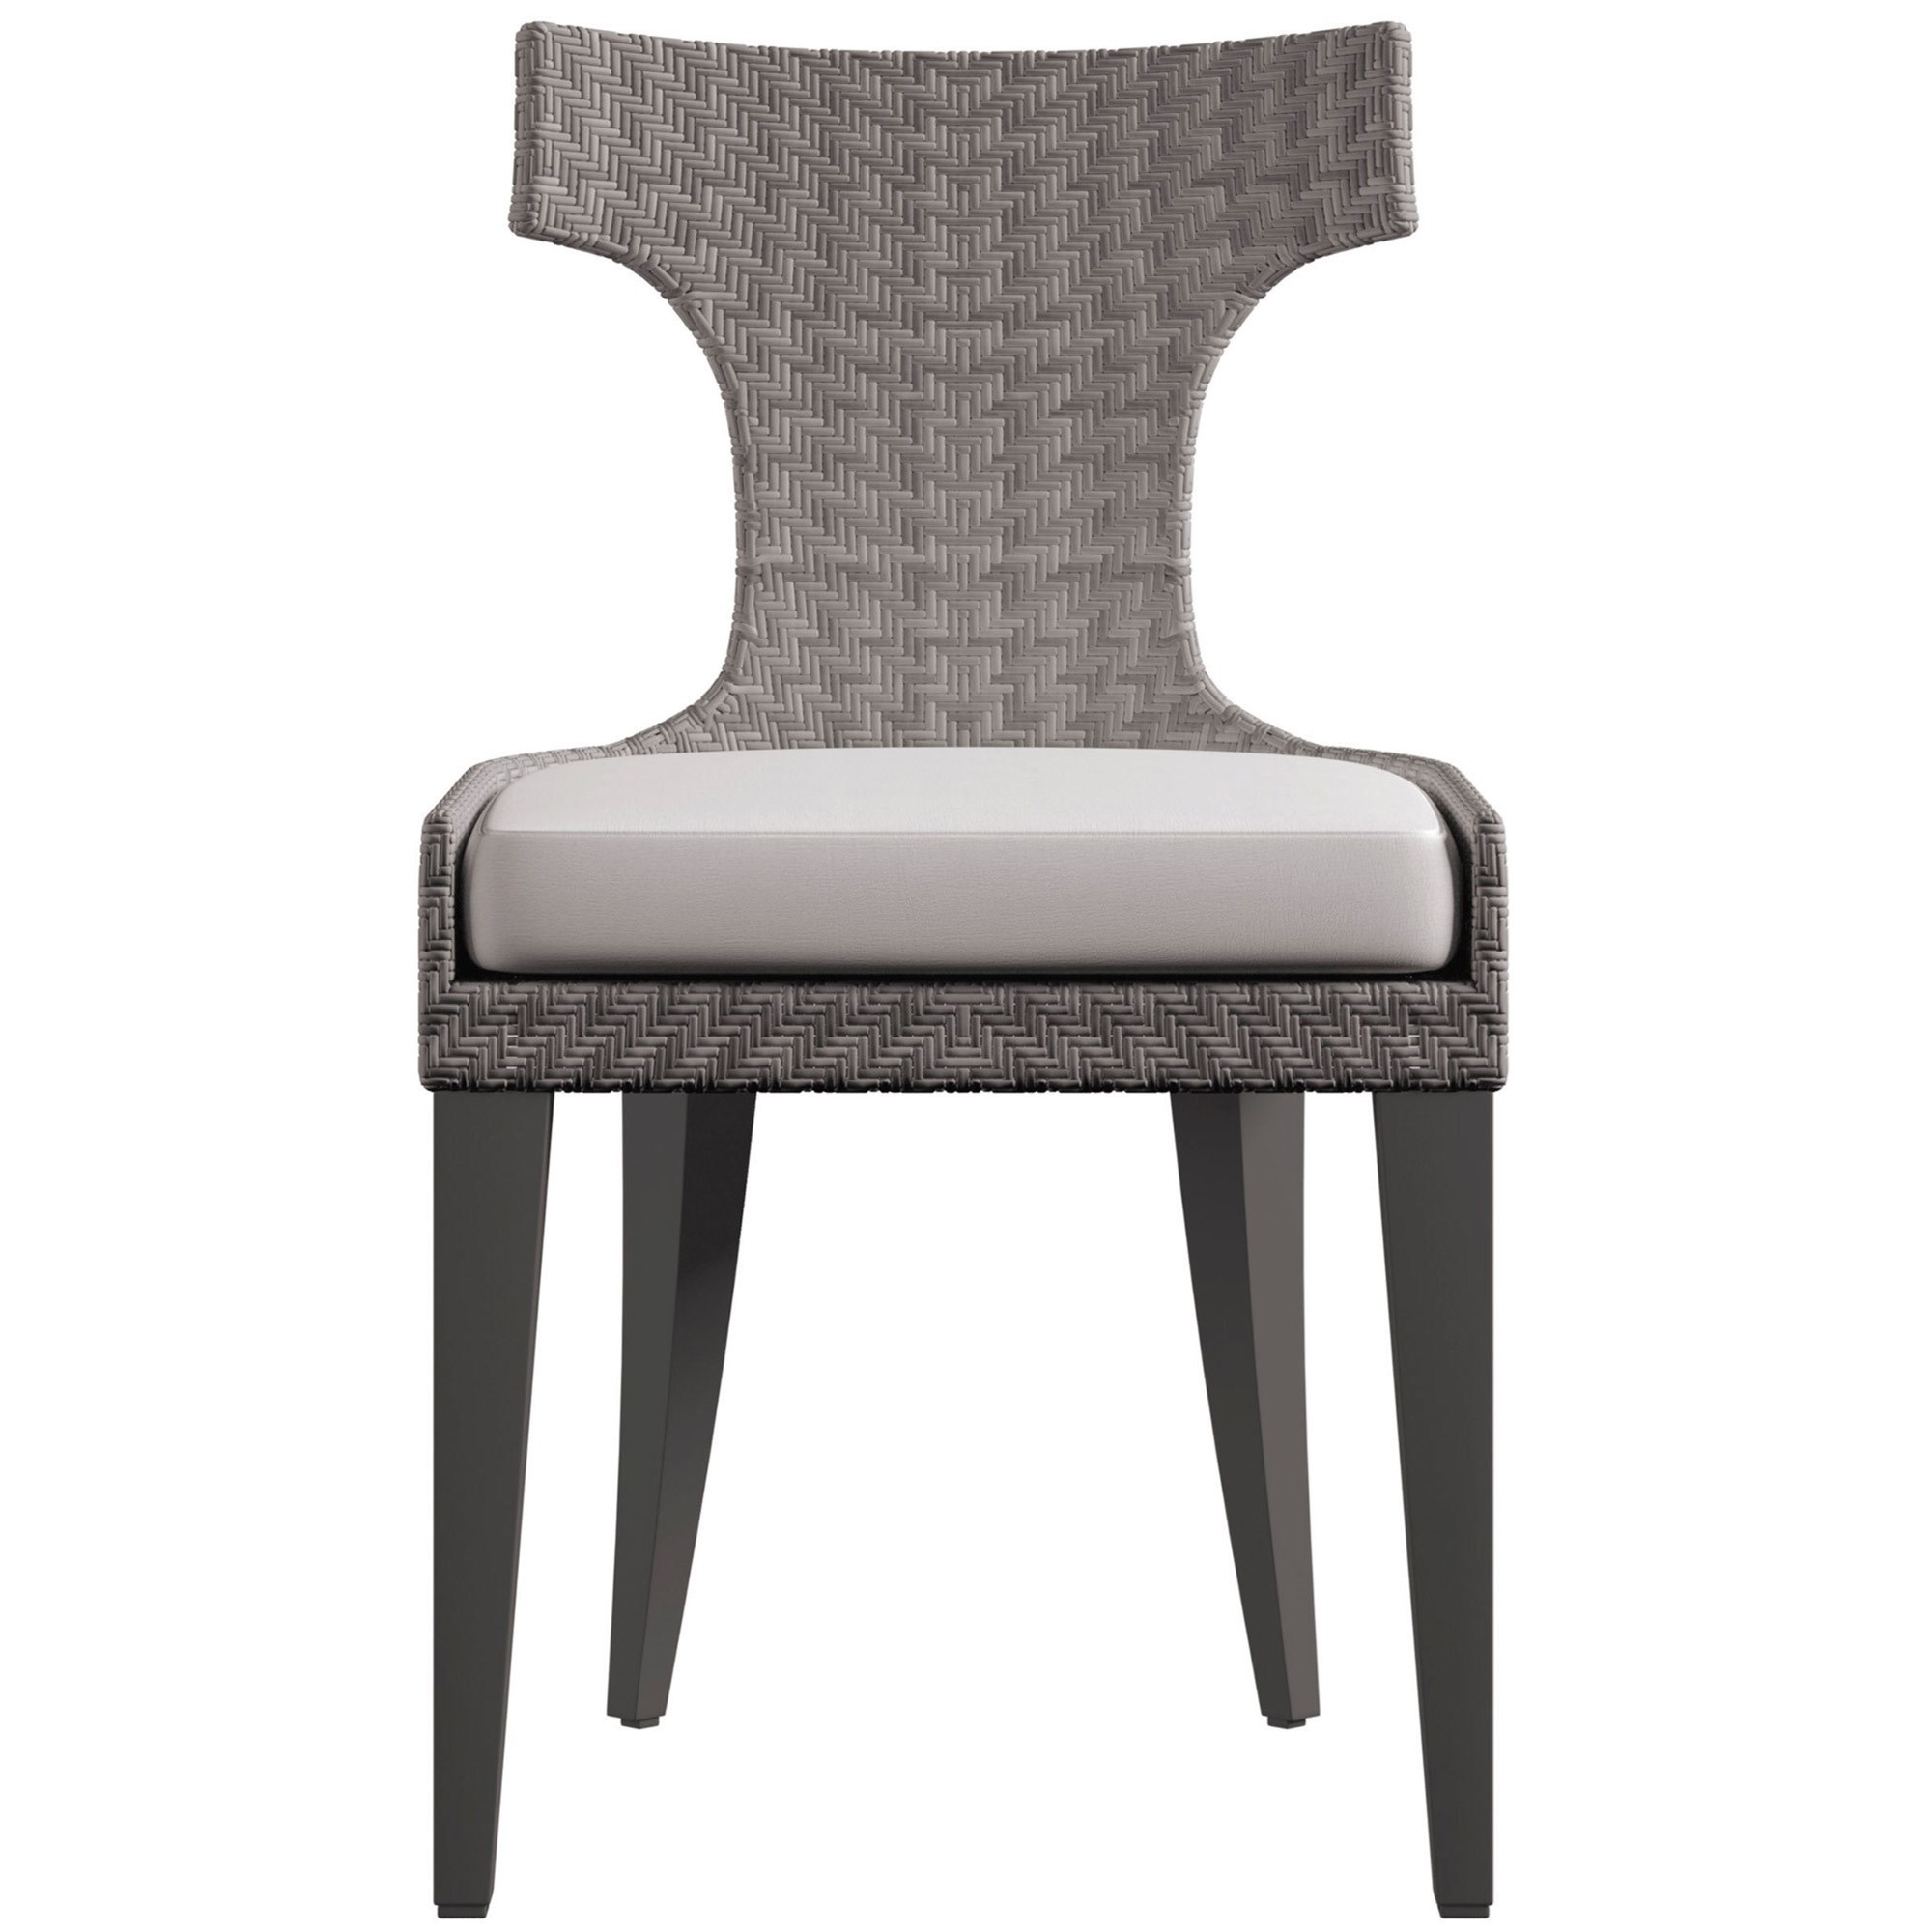 Exteriors - Sarasota Wicker Side Chair by Bernhardt at Baer's Furniture